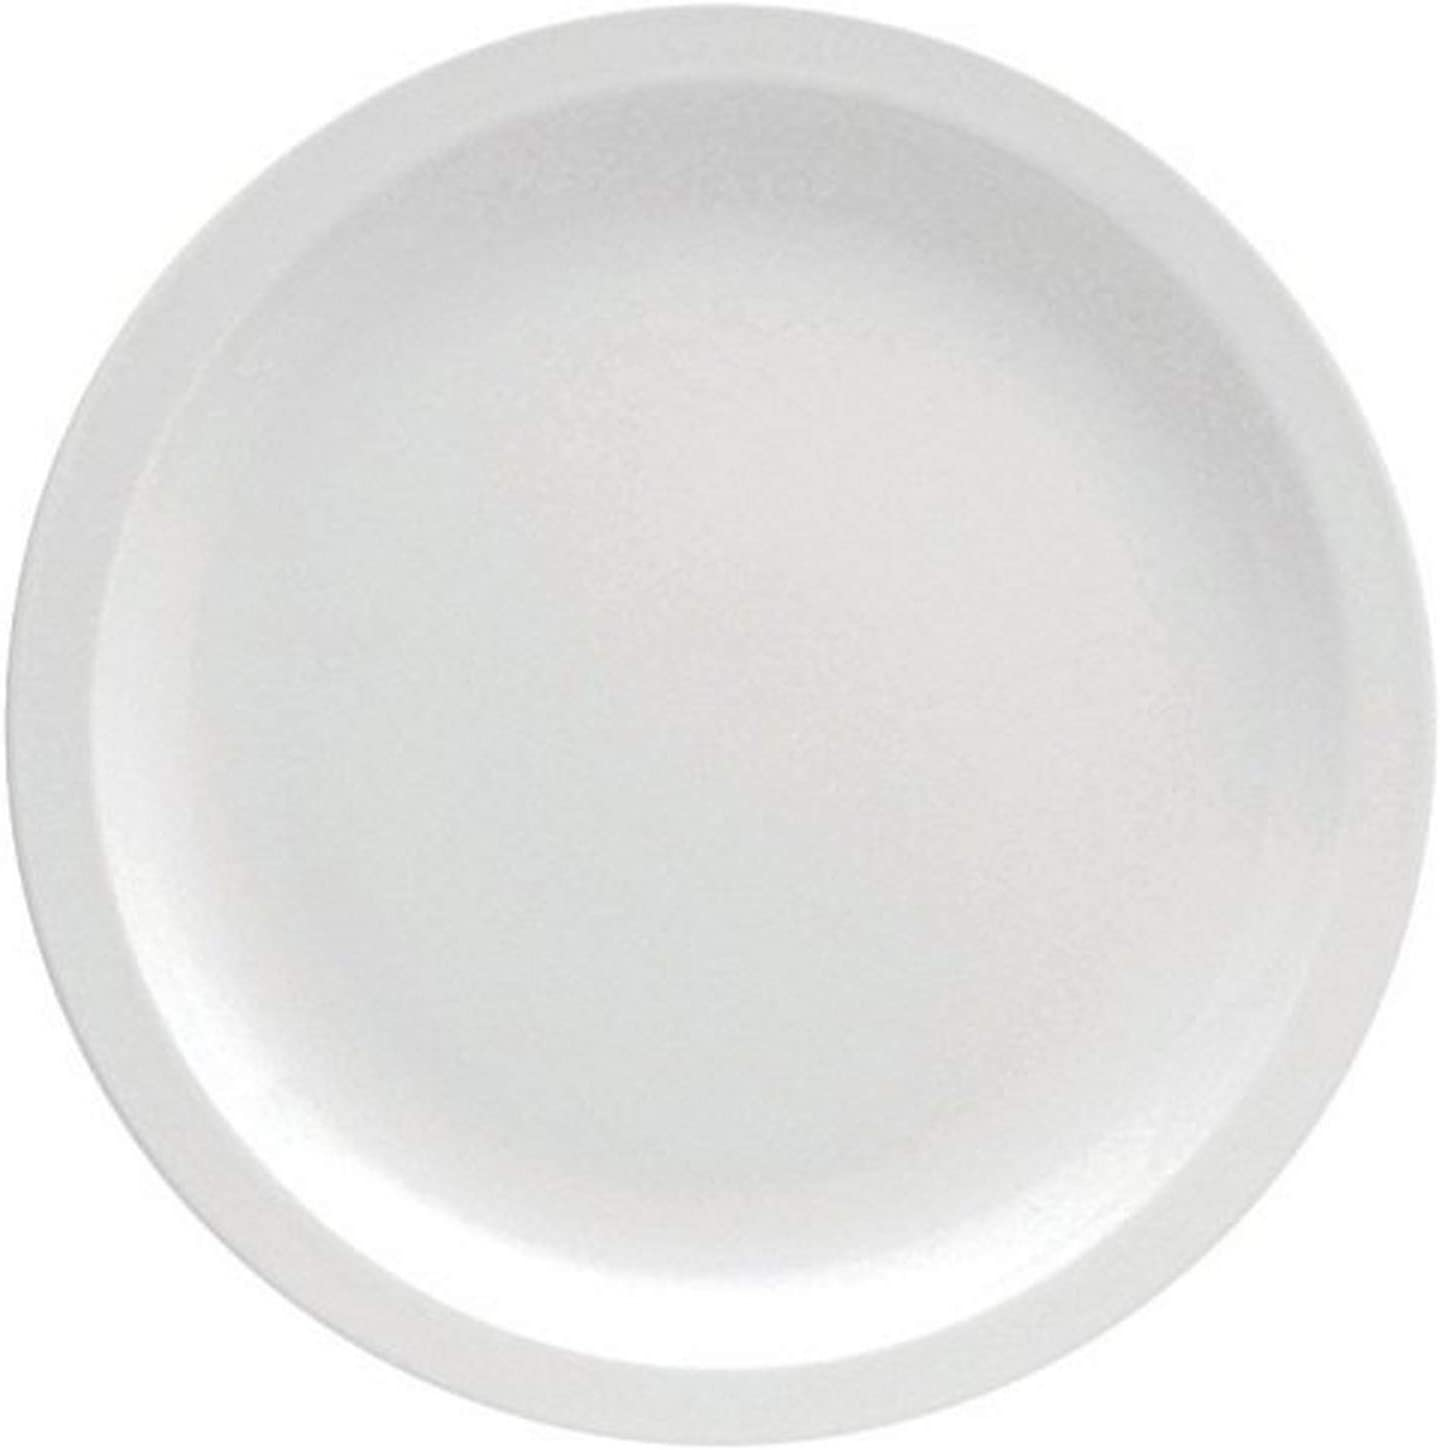 "Oneida Foodservice F8000000150 Narrow Rim Plate, 10.375"", Set of 12, Bright White Porcelain"